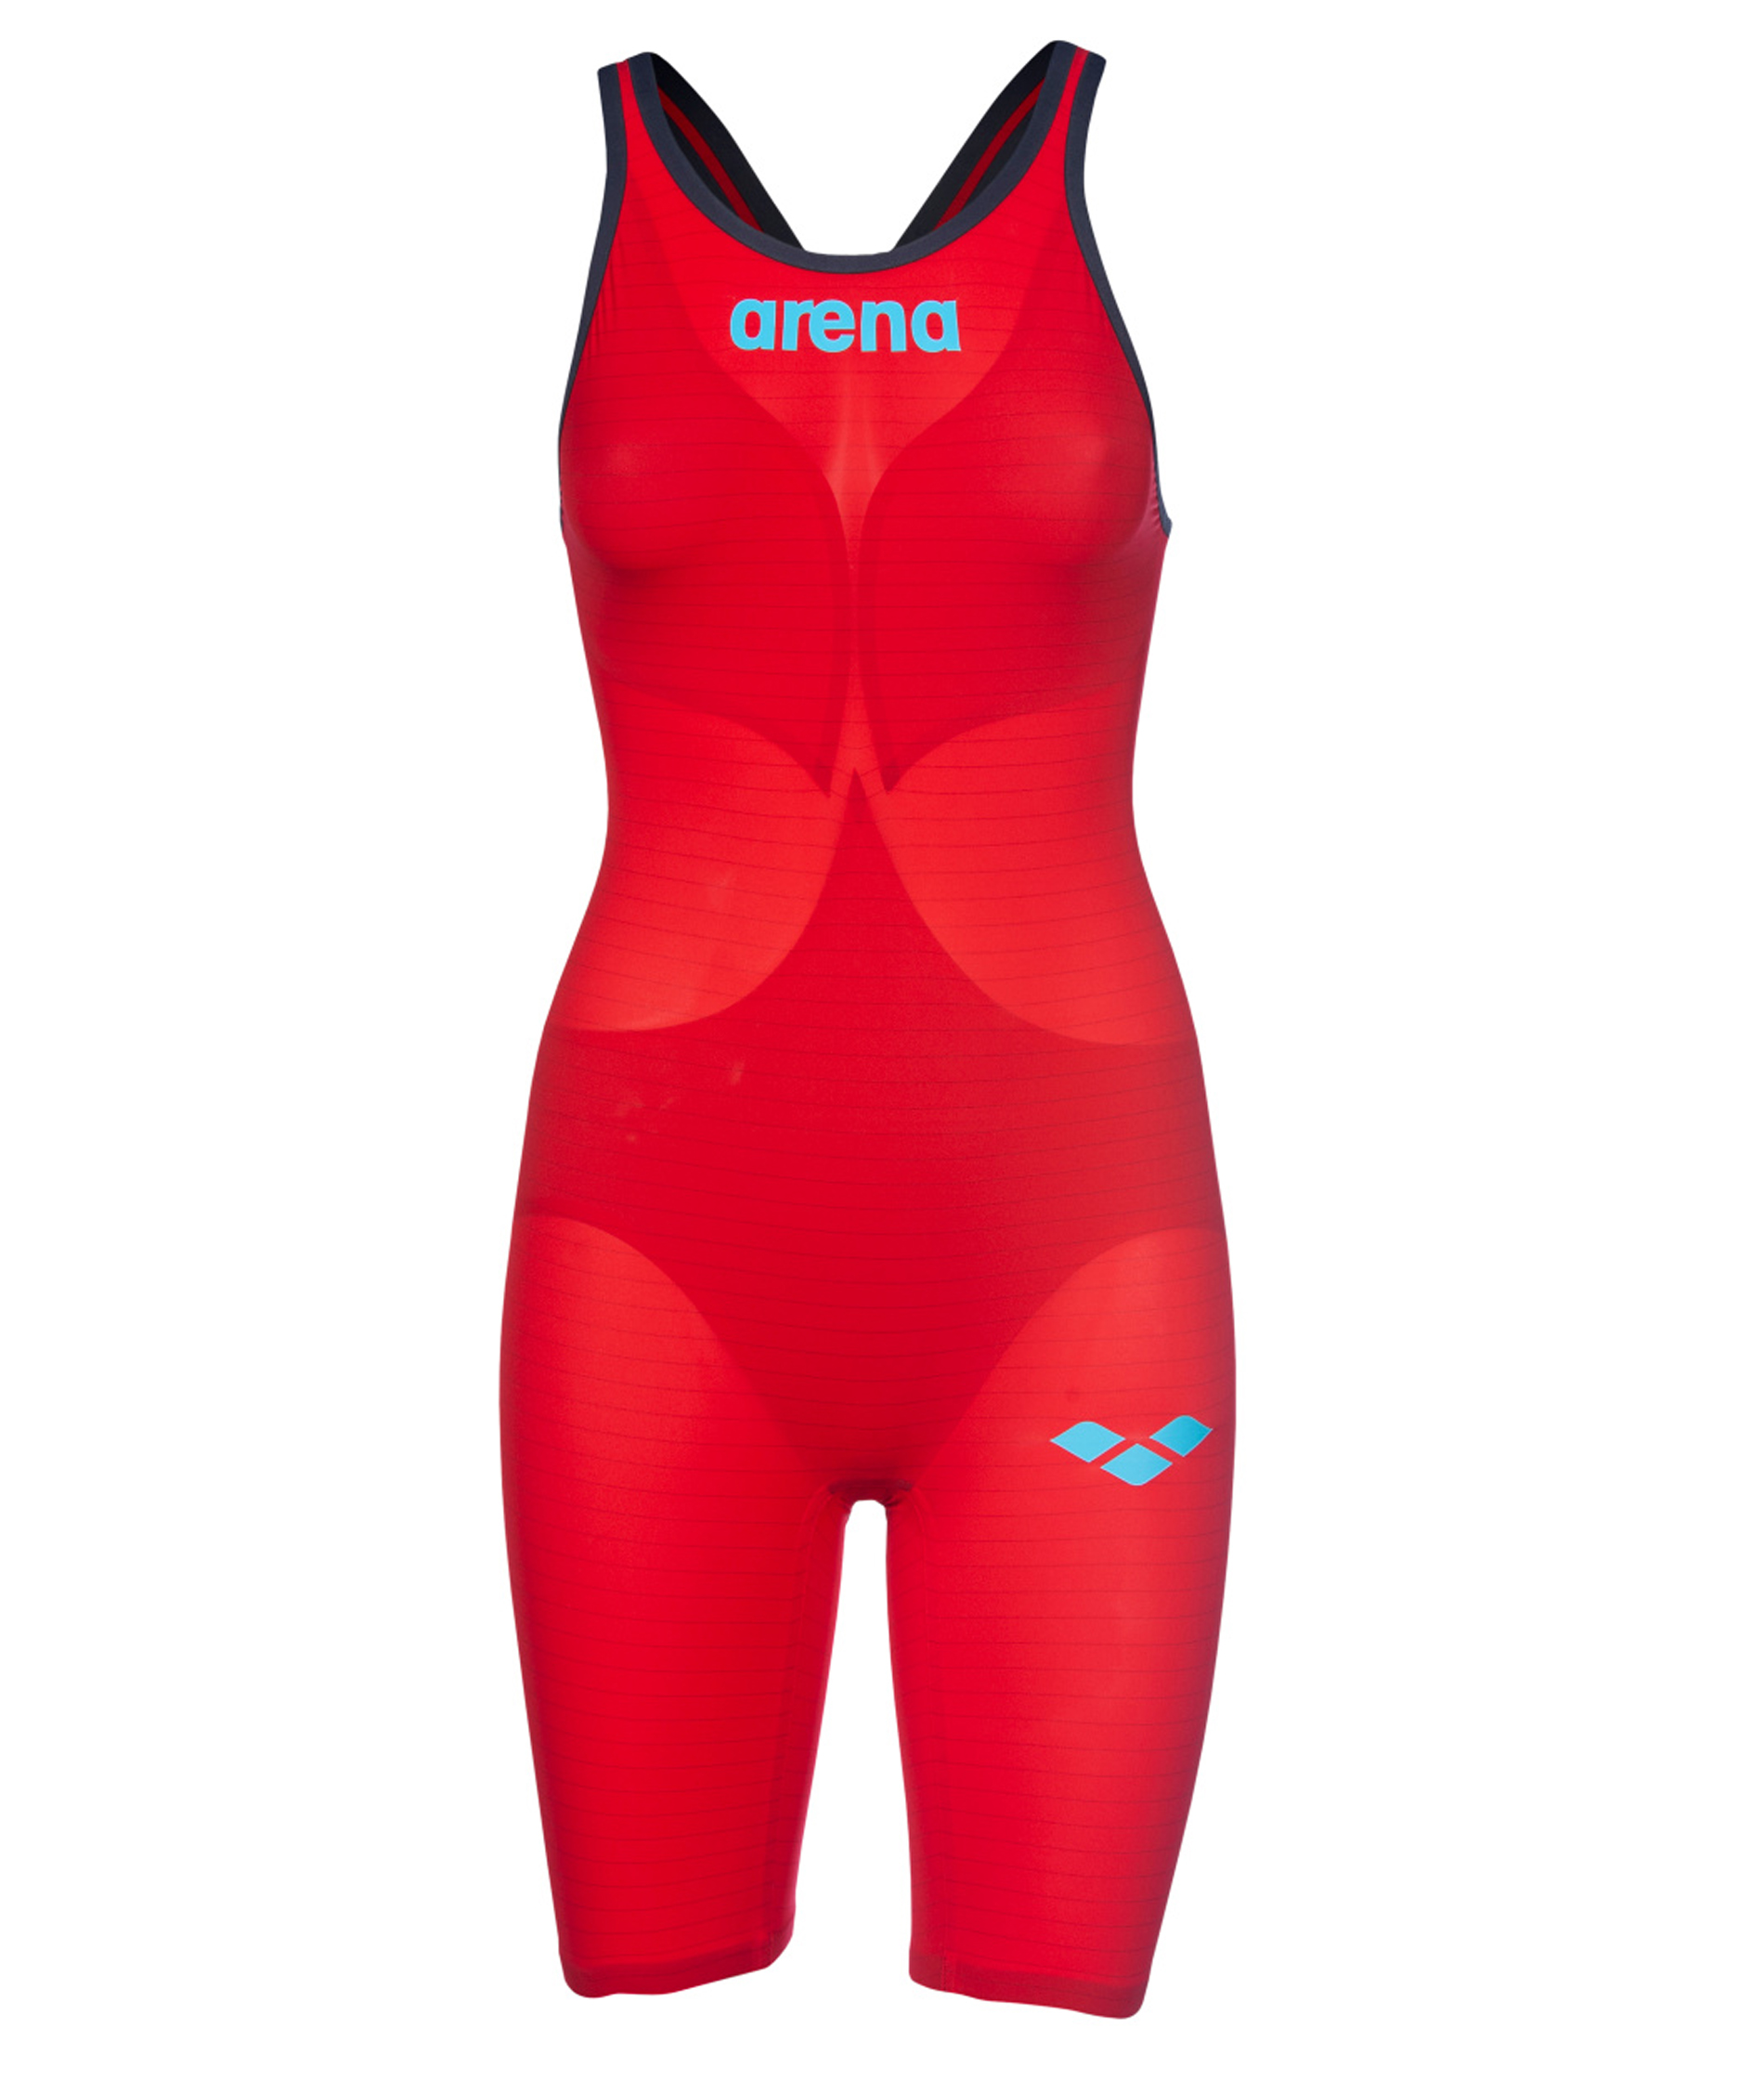 Arena Womens Carbon Air2 Open Back Kneeskin - Red/Blue